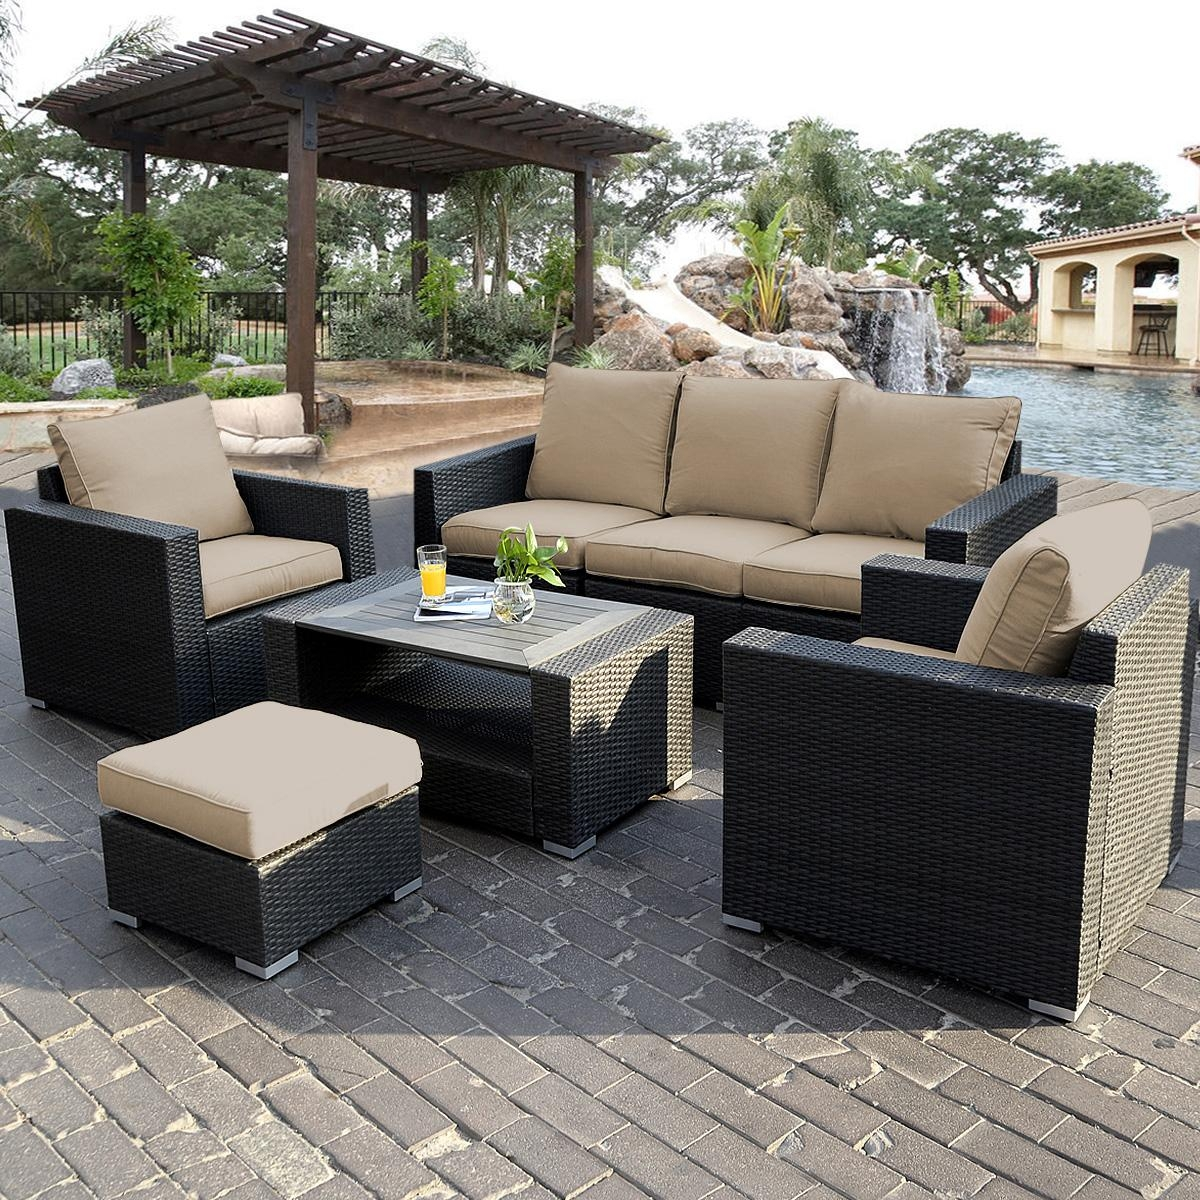 15 Choices of Cheap Outdoor Sectionals  Sofa Ideas